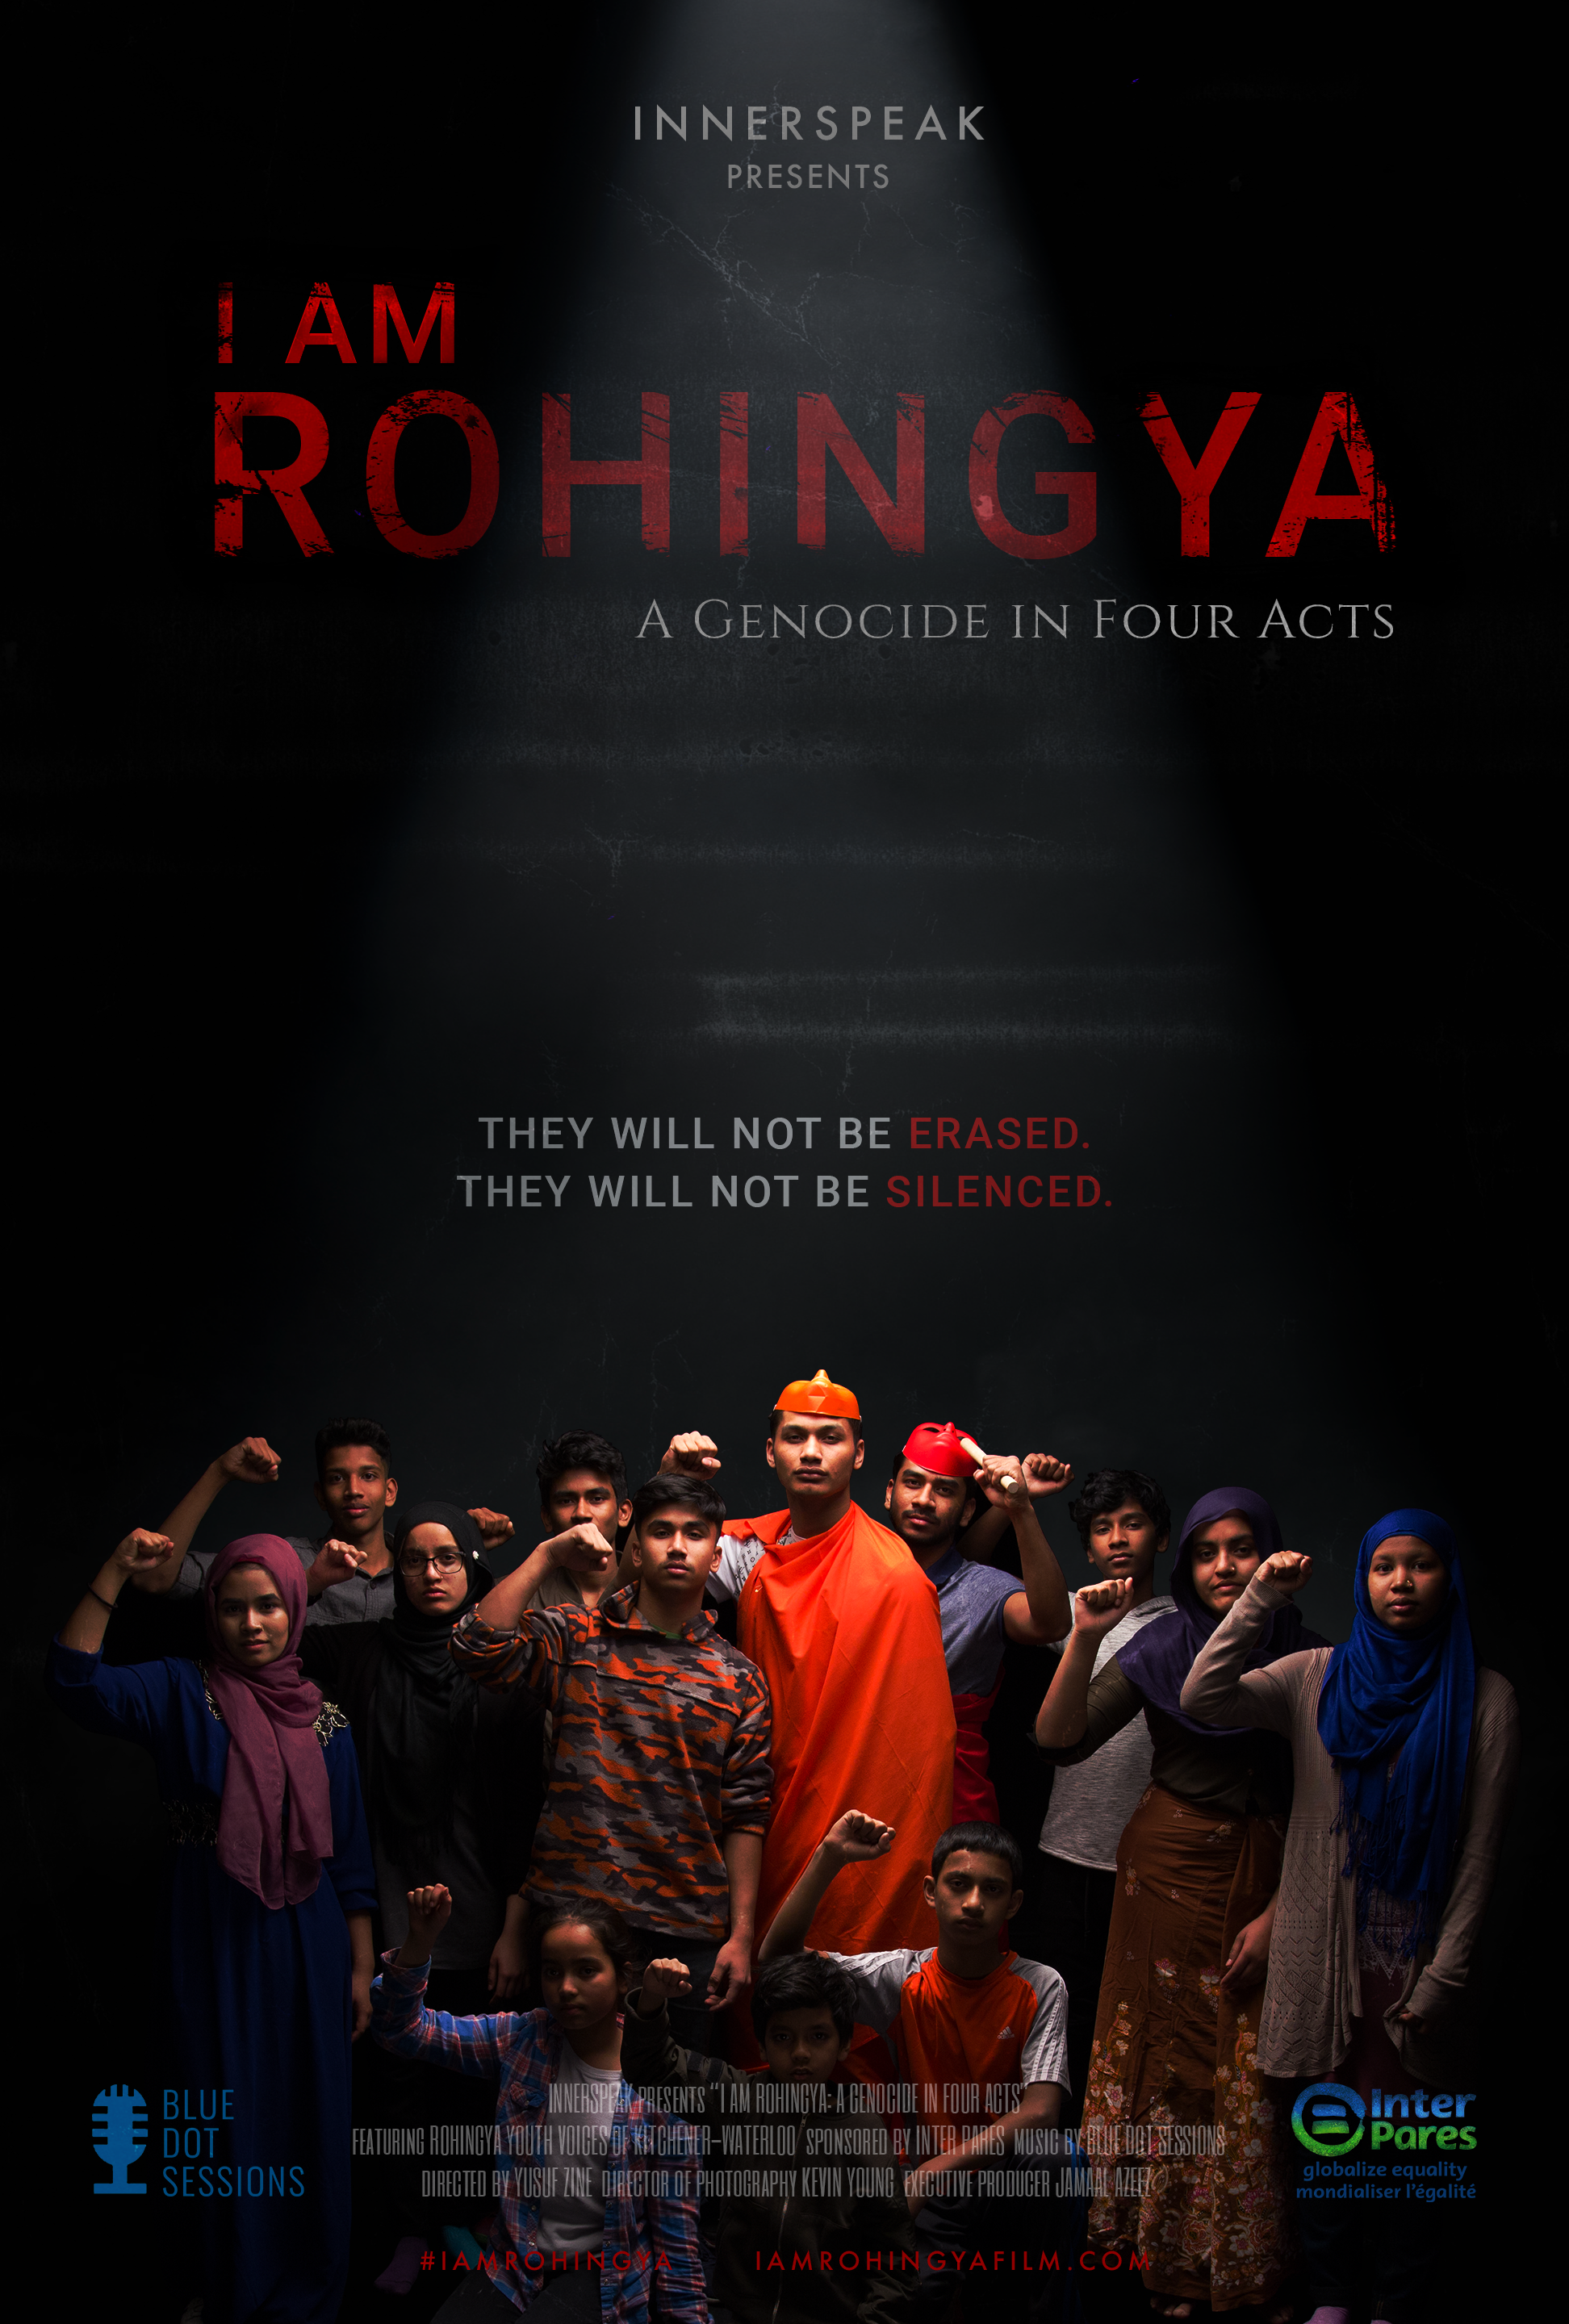 Film poster for I Am Rohingya depicts a group of young migrants in a black space with their fists raised